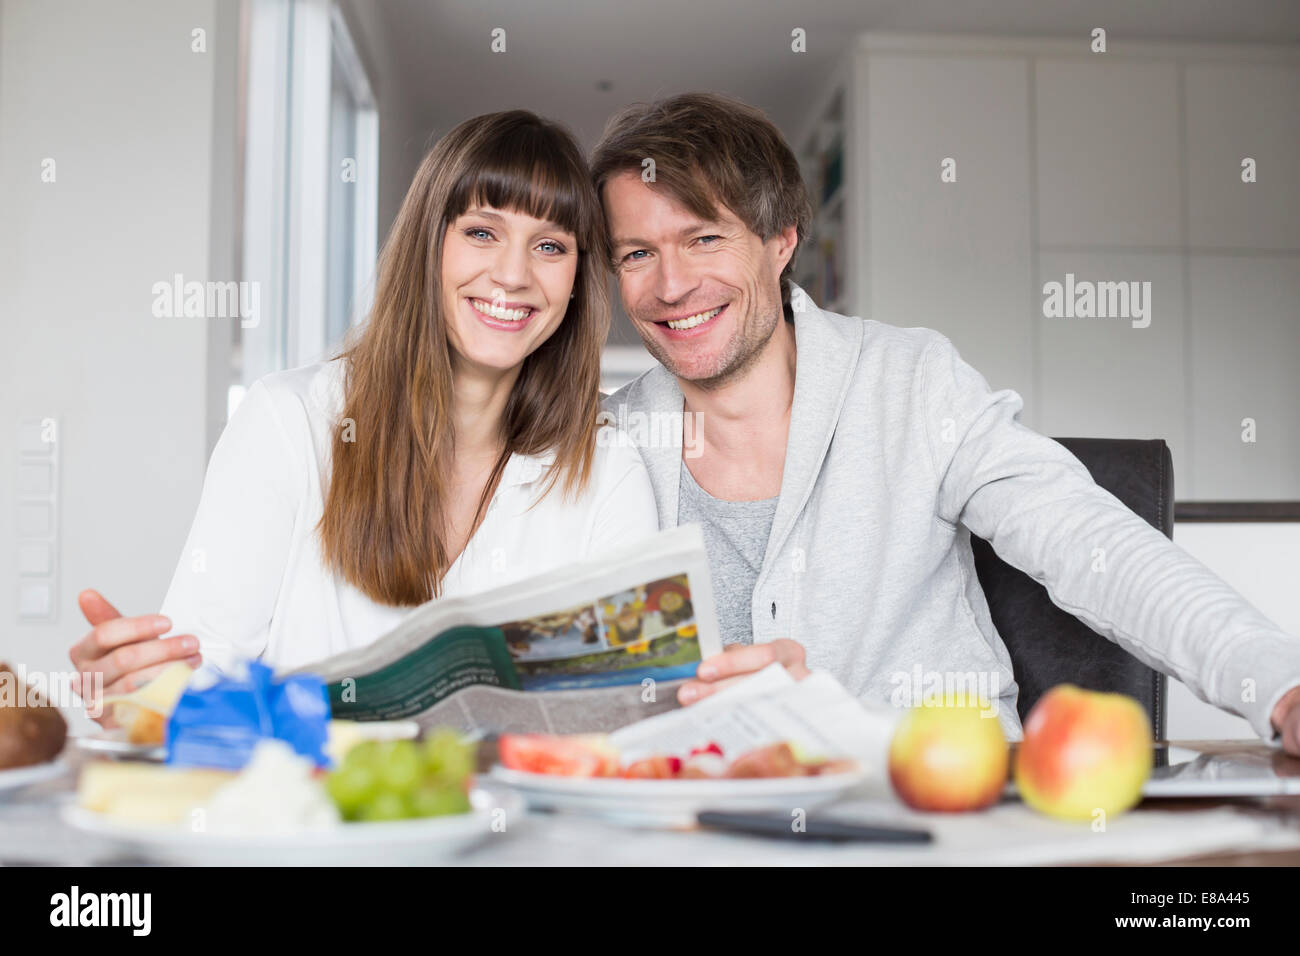 Portrait of couple having breakfast and reading newspaper together, smiling Stock Photo